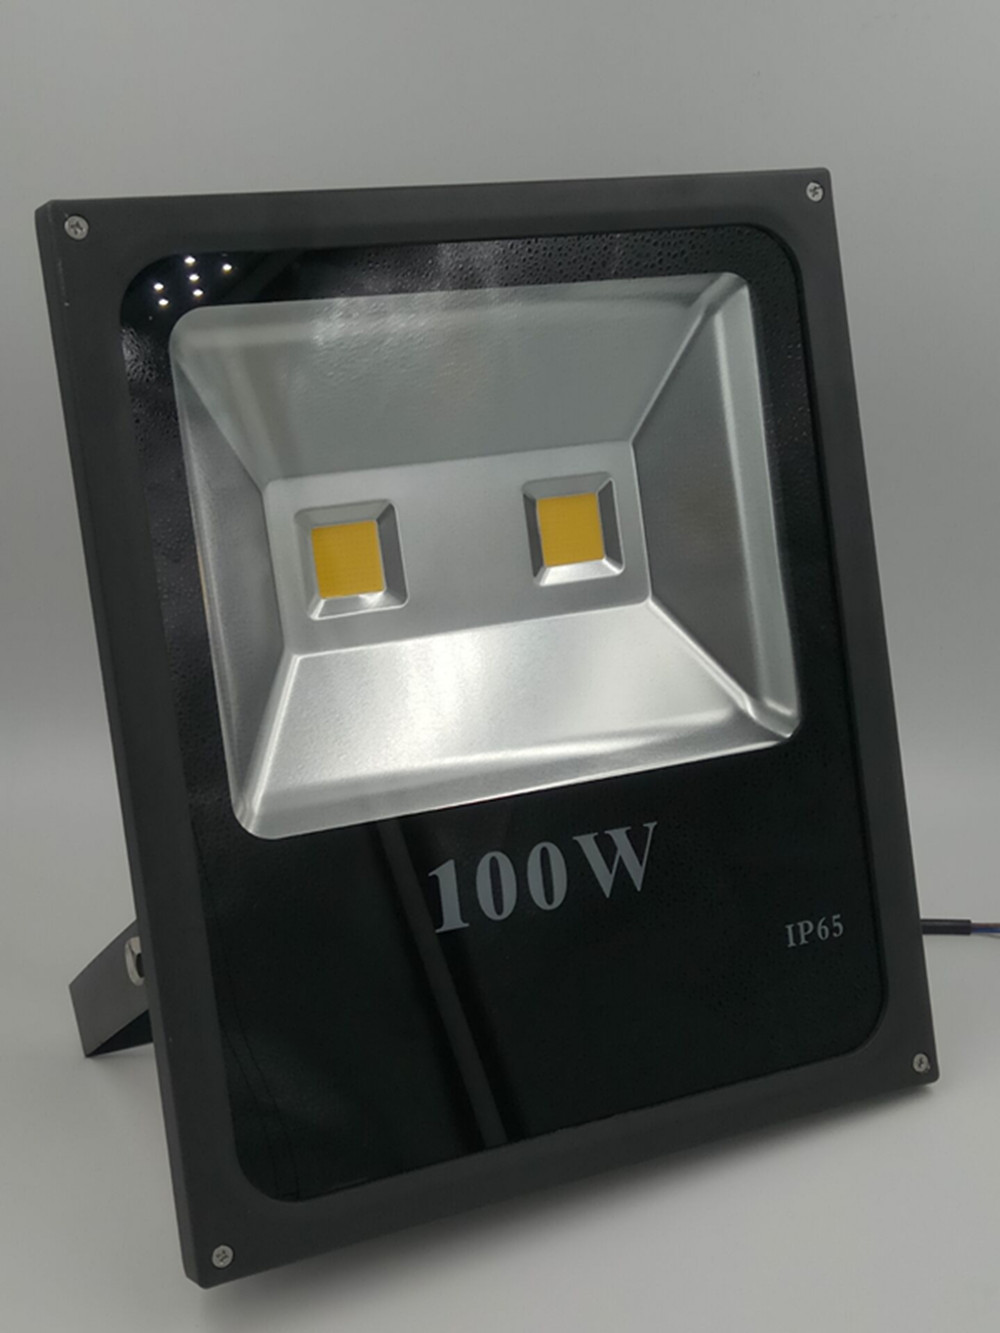 Ultrathin LED Flood Light 100w LED Floodlight IP65 Waterproof AC85V-265V Warm/cold white LED Spotlight outdoor lighting купить